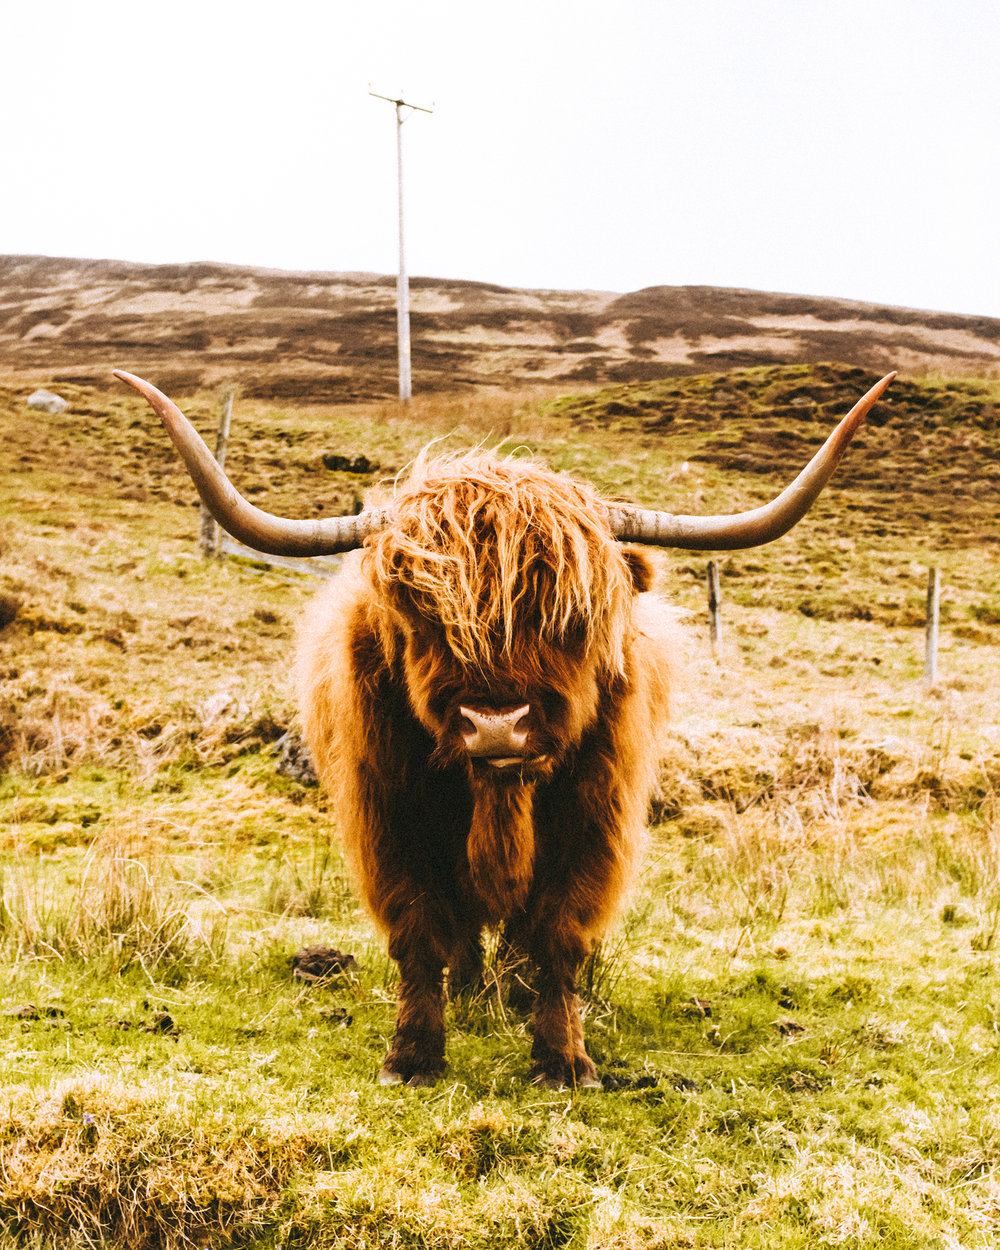 Highland cattle with their stylish haircut